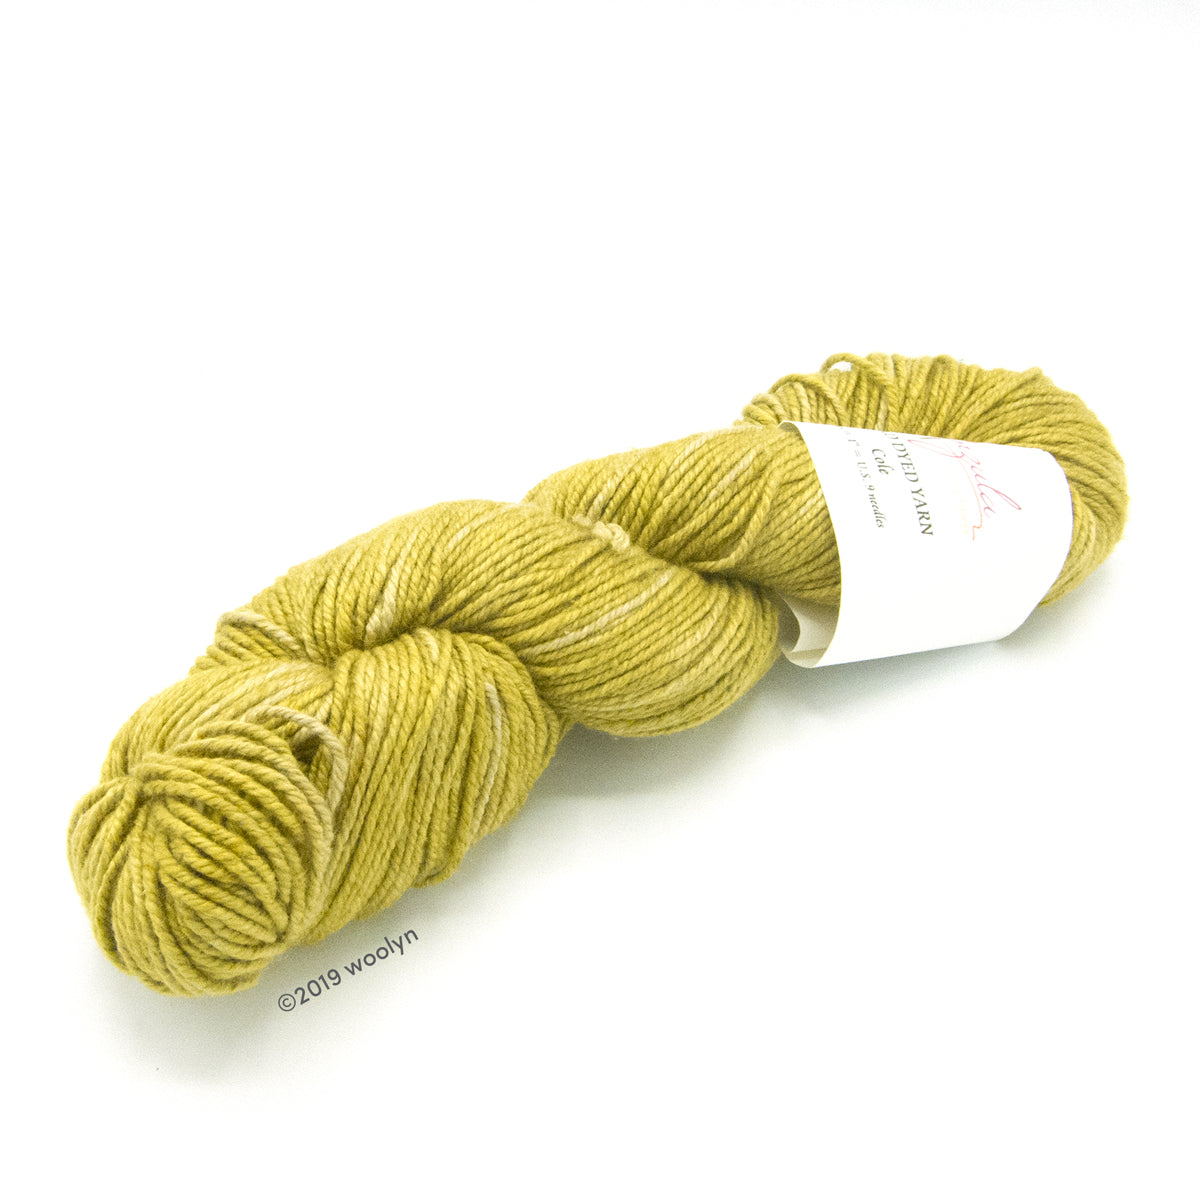 A twisted skein of Anzula Cole yarn in a bright yellow with green overtones.